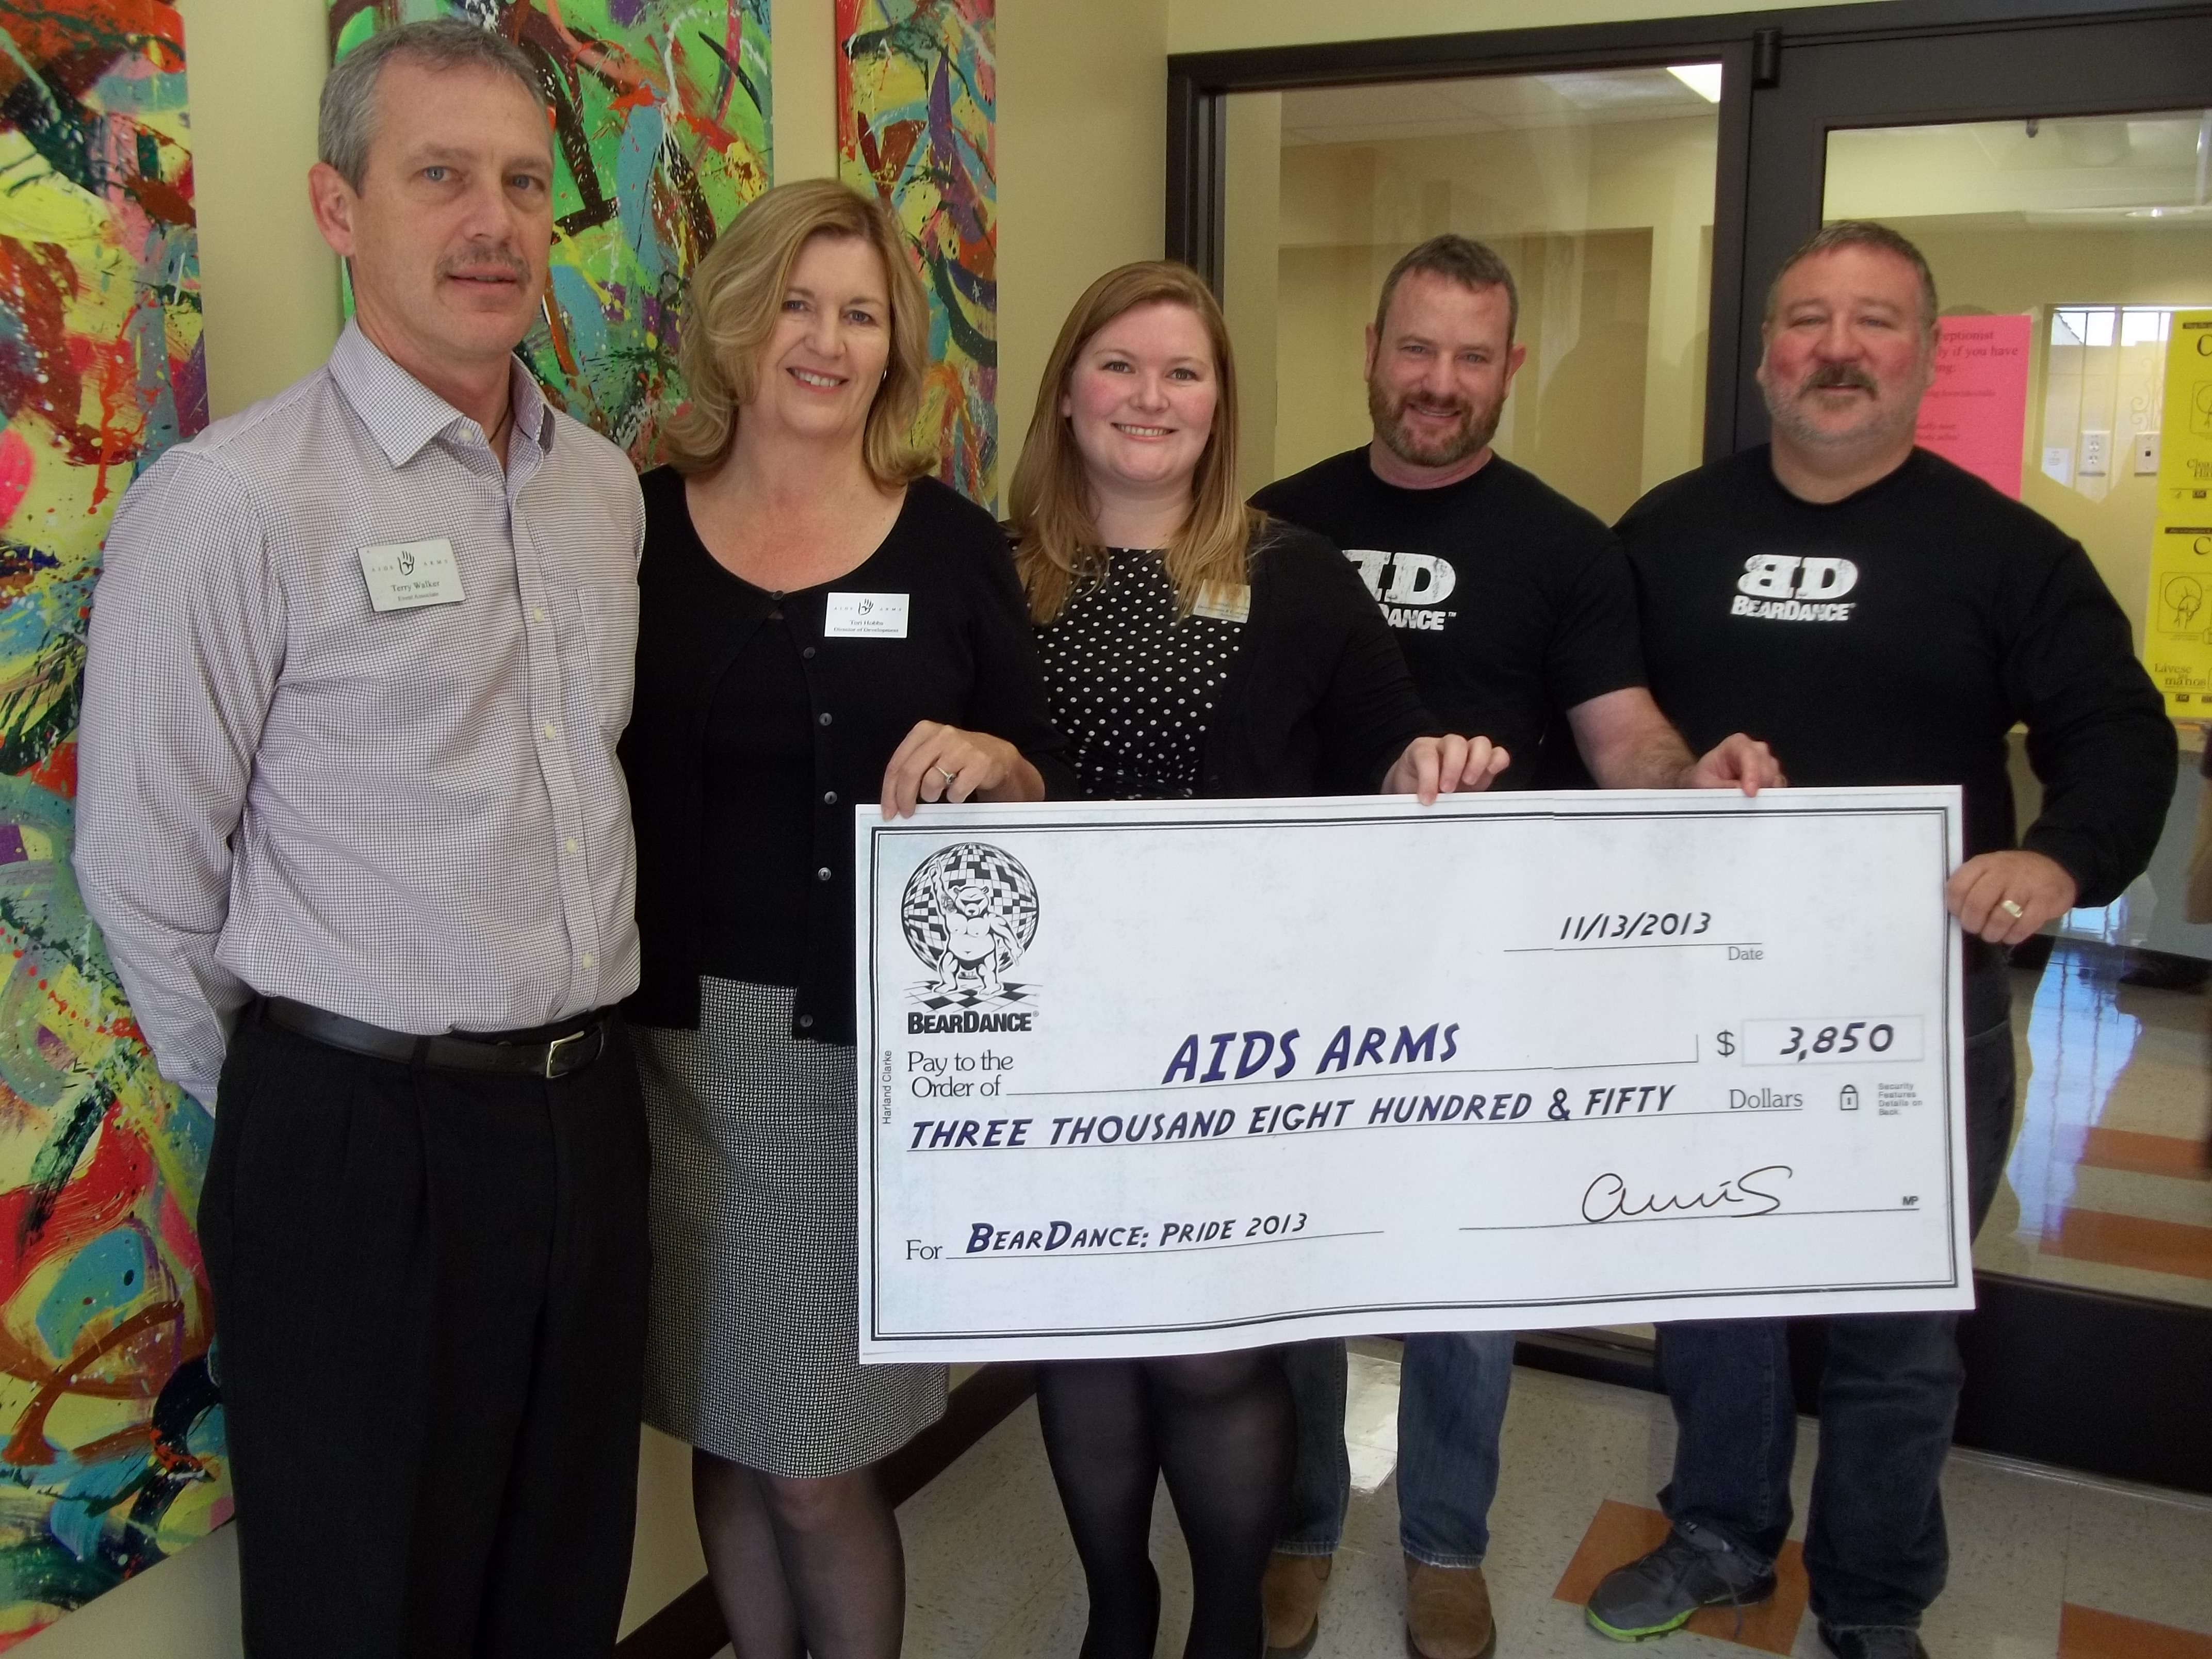 BearDance gives AIDS Arms $3K donation